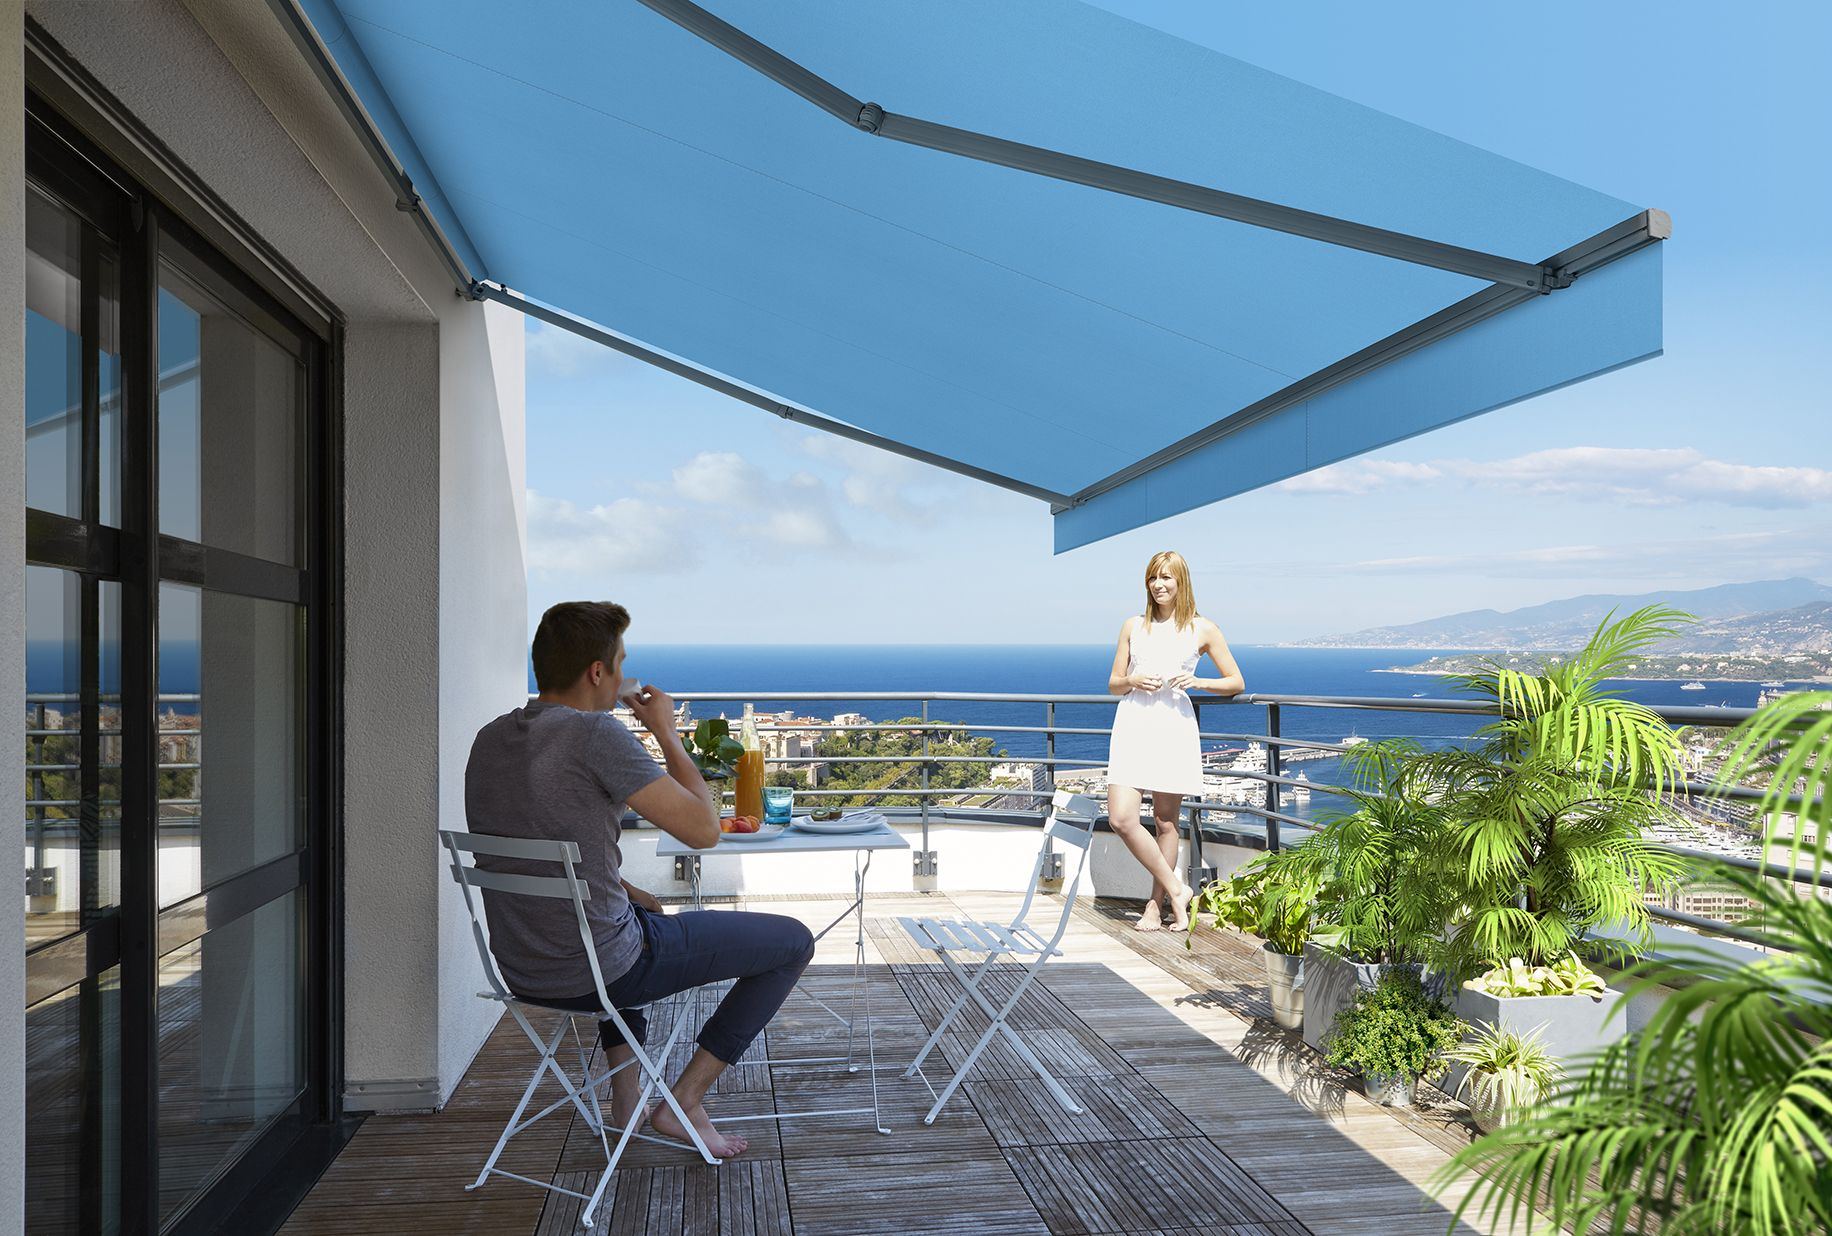 side residential arm drop window products awning com retractable awnings the lateral trieste retractableawnings